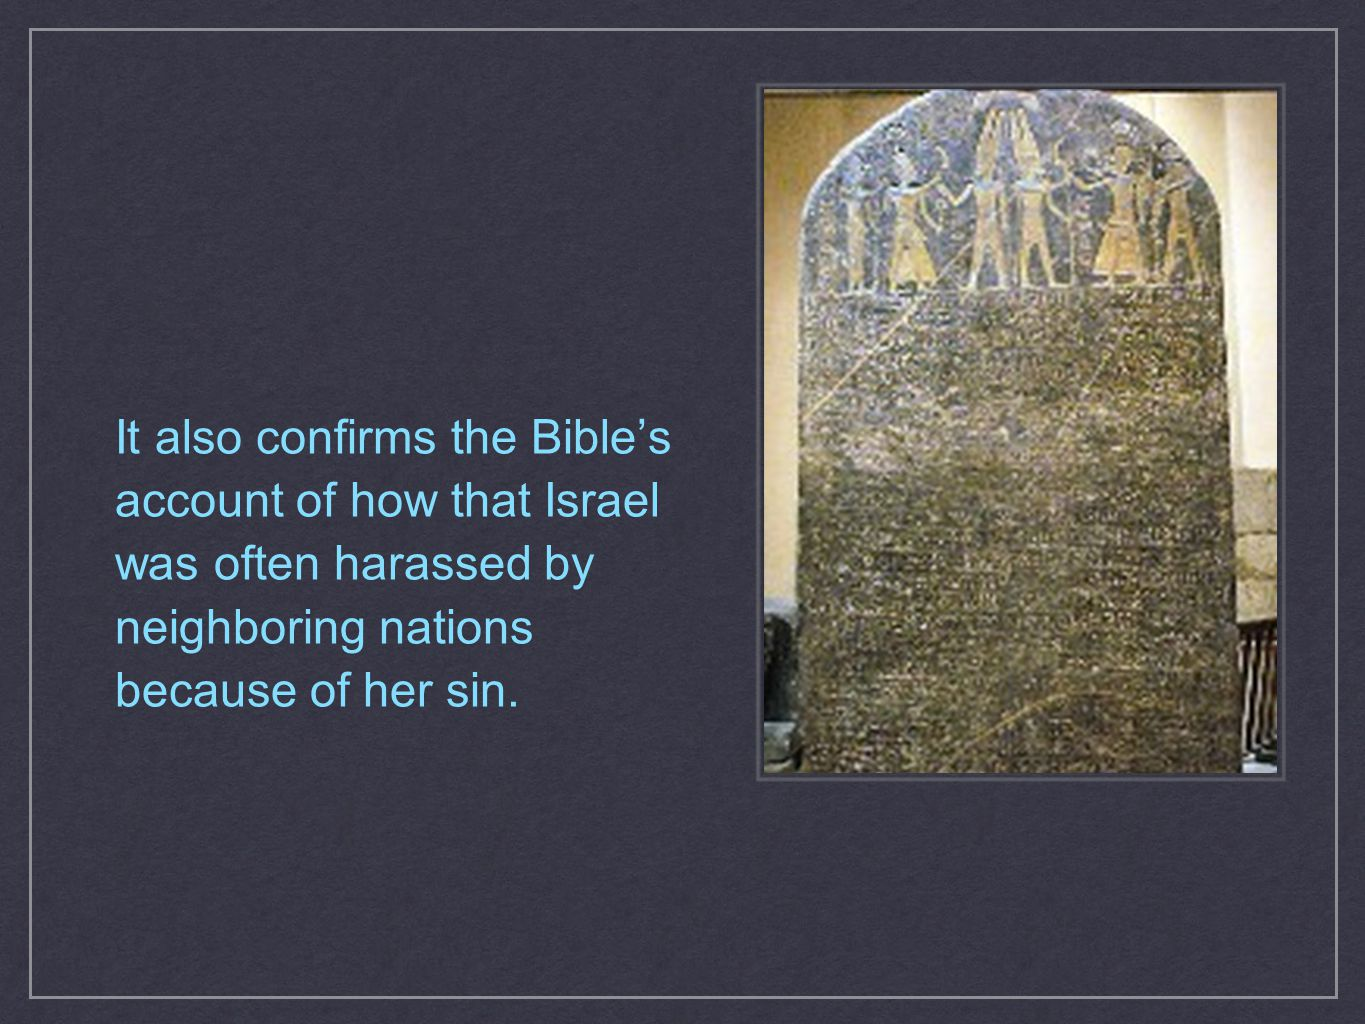 It also confirms the Bible's account of how that Israel was often harassed by neighboring nations because of her sin.